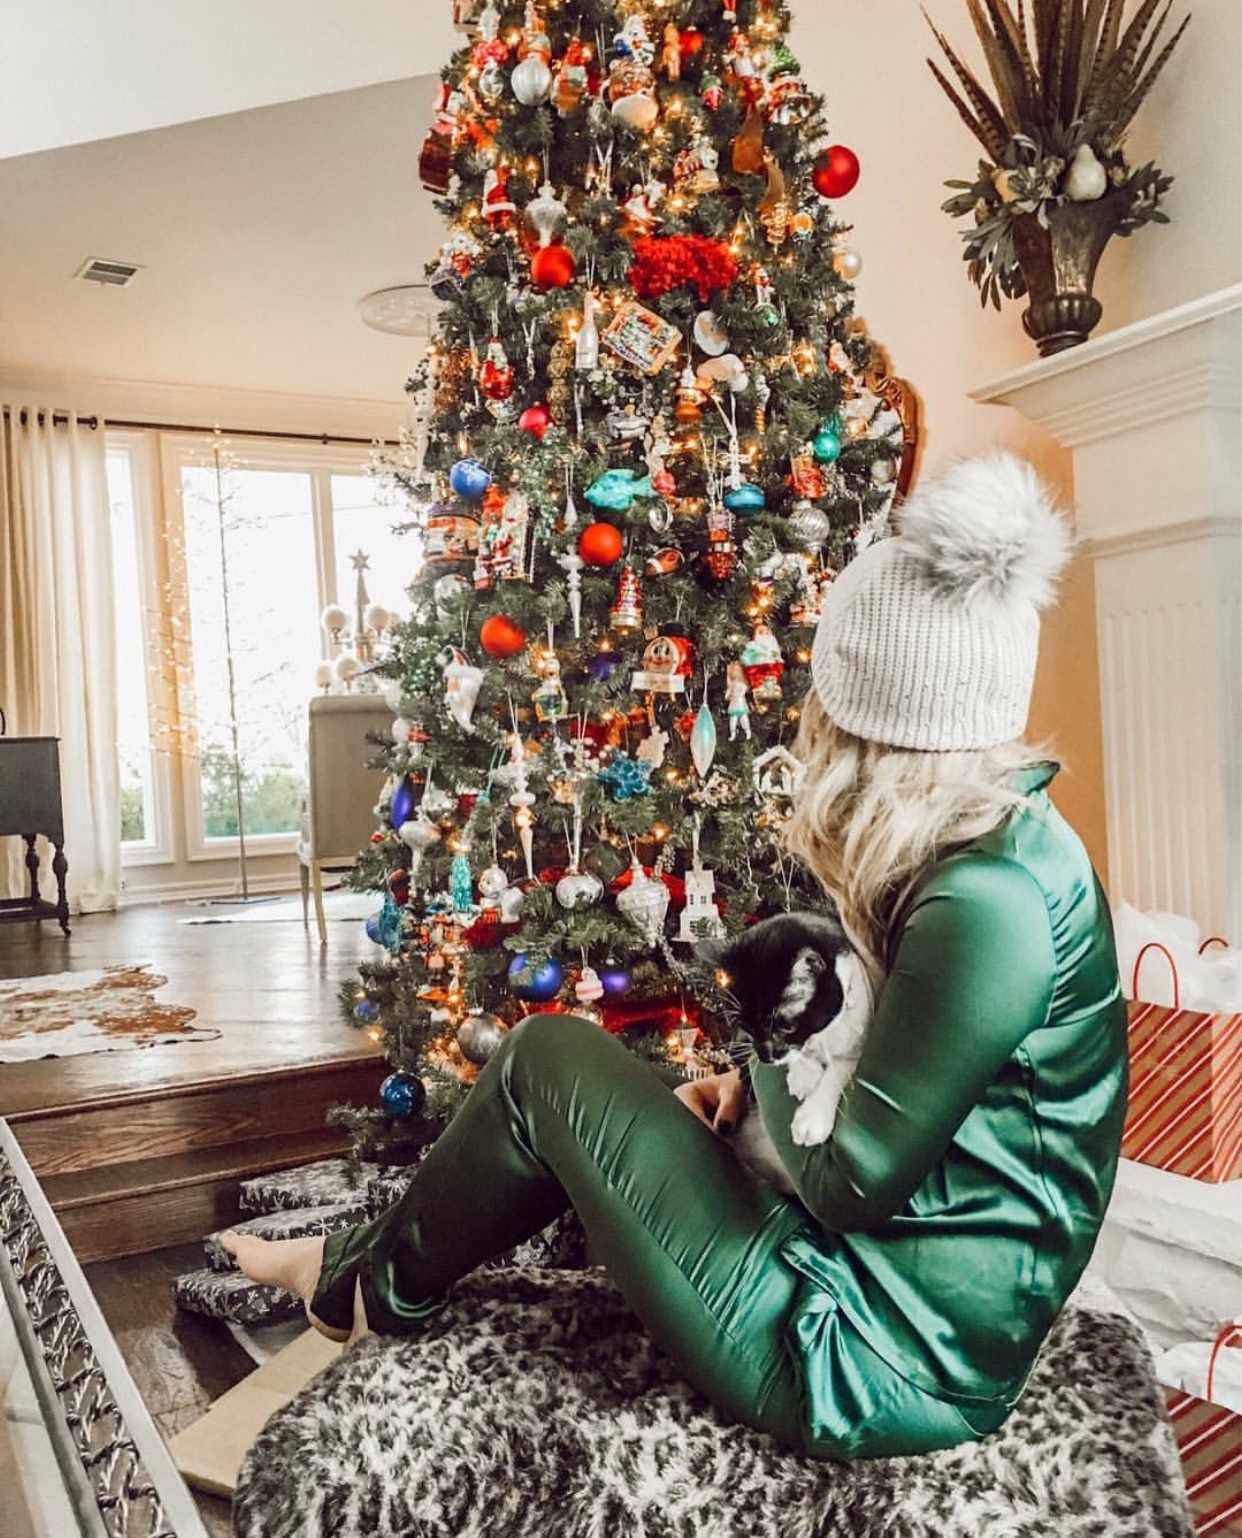 Christmas | Audrey Madison Stowe a fashion and lifestyle blogger